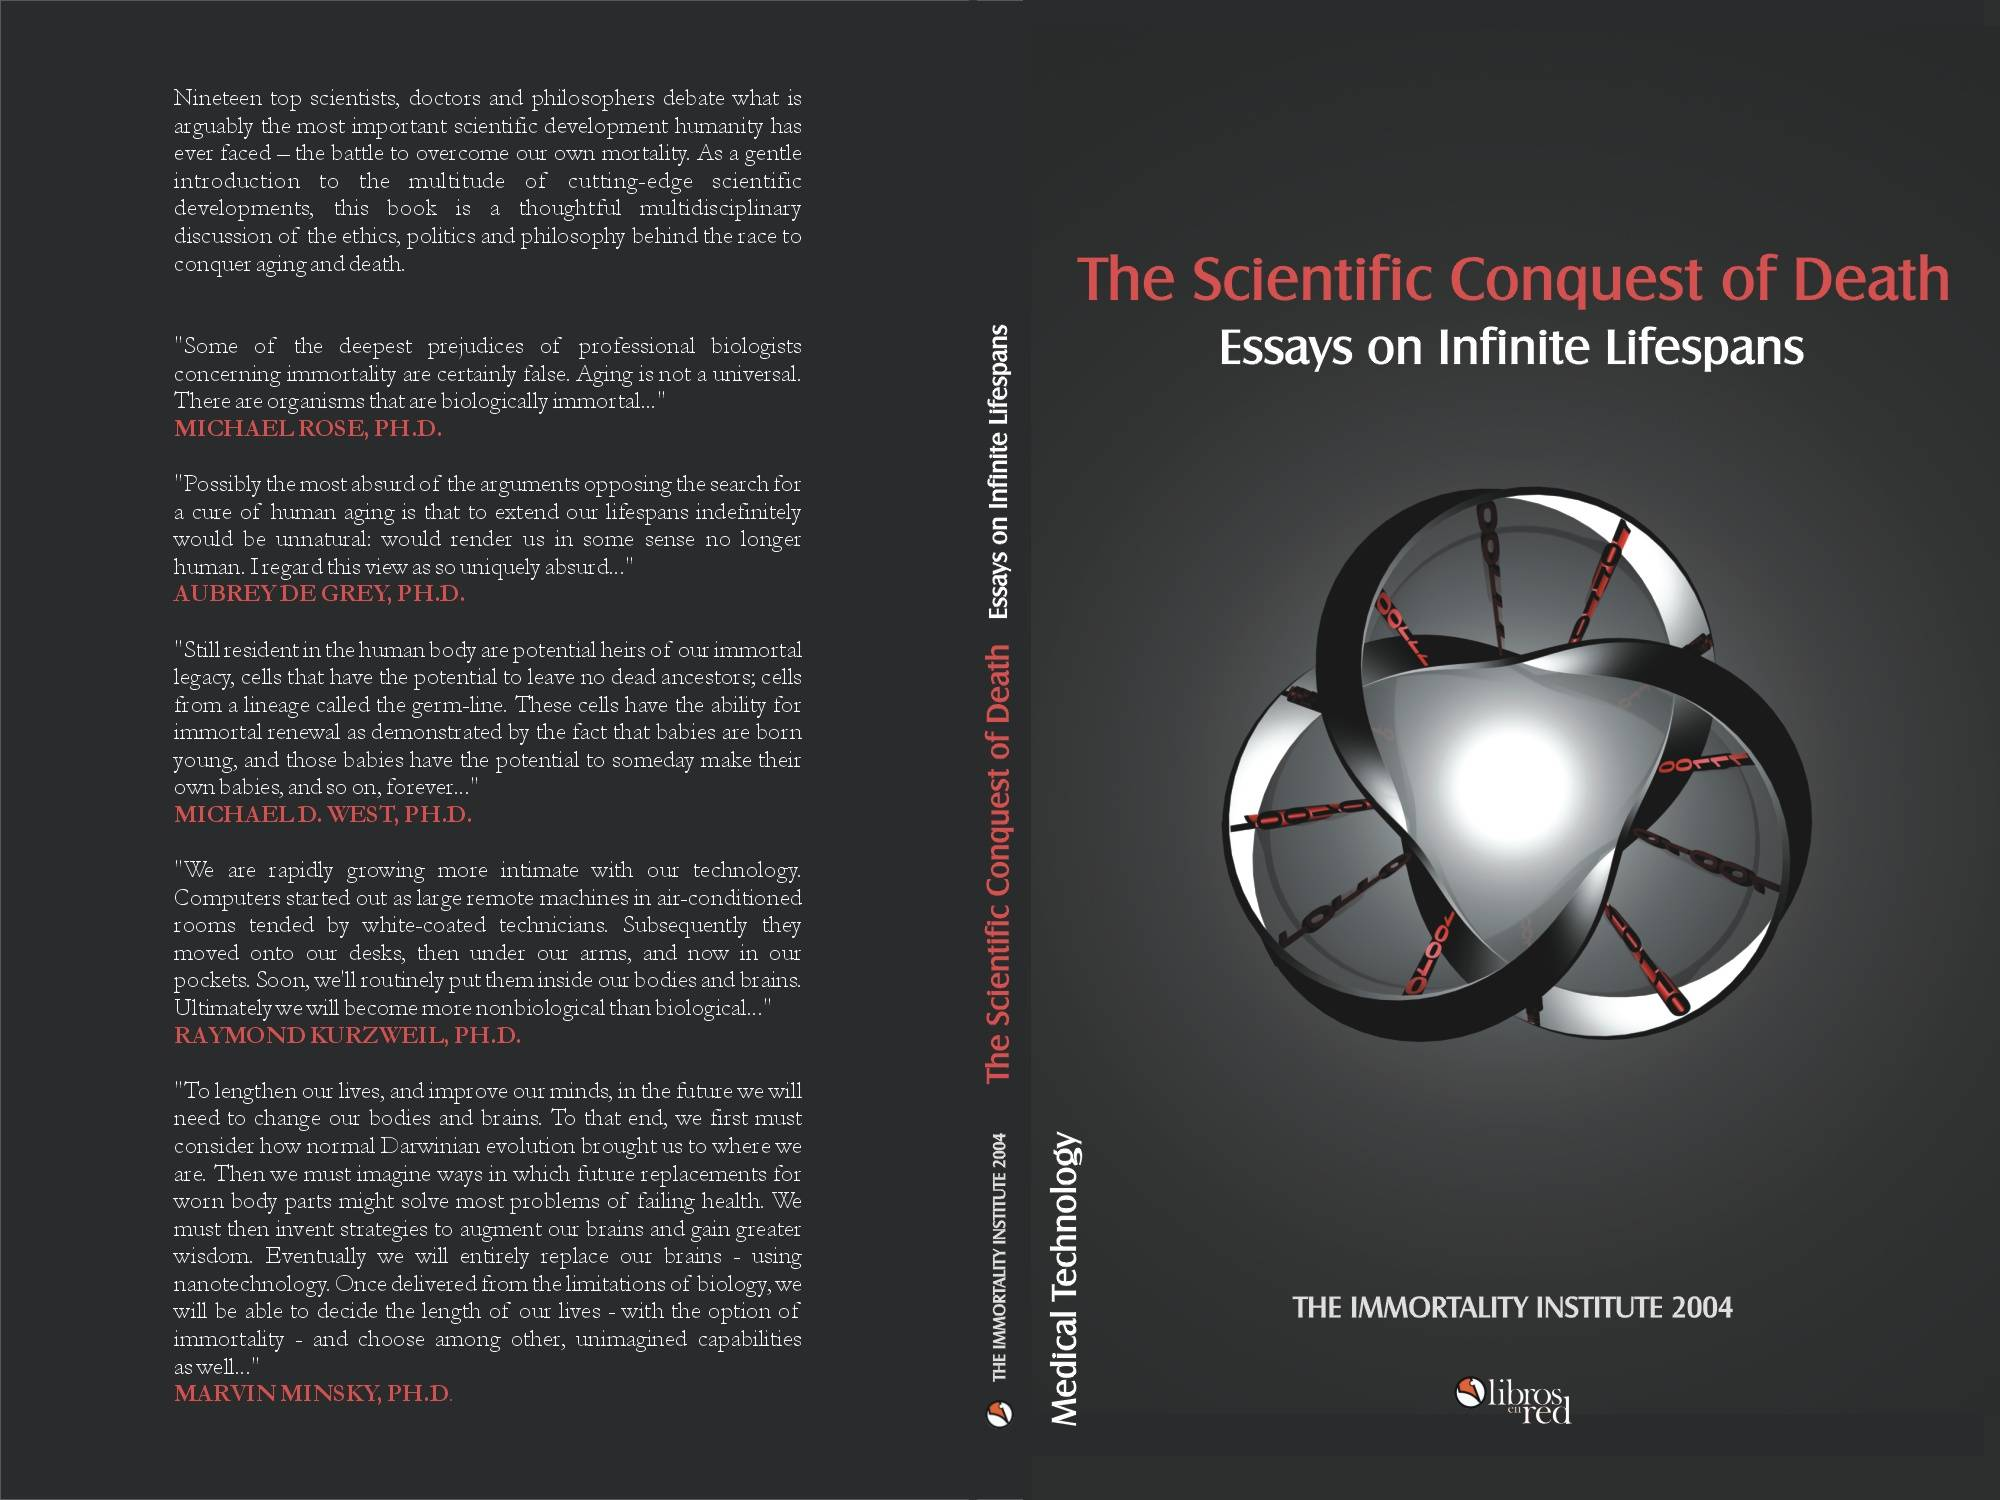 book org immortality institute click to see complete book cover the scientific conquest of death